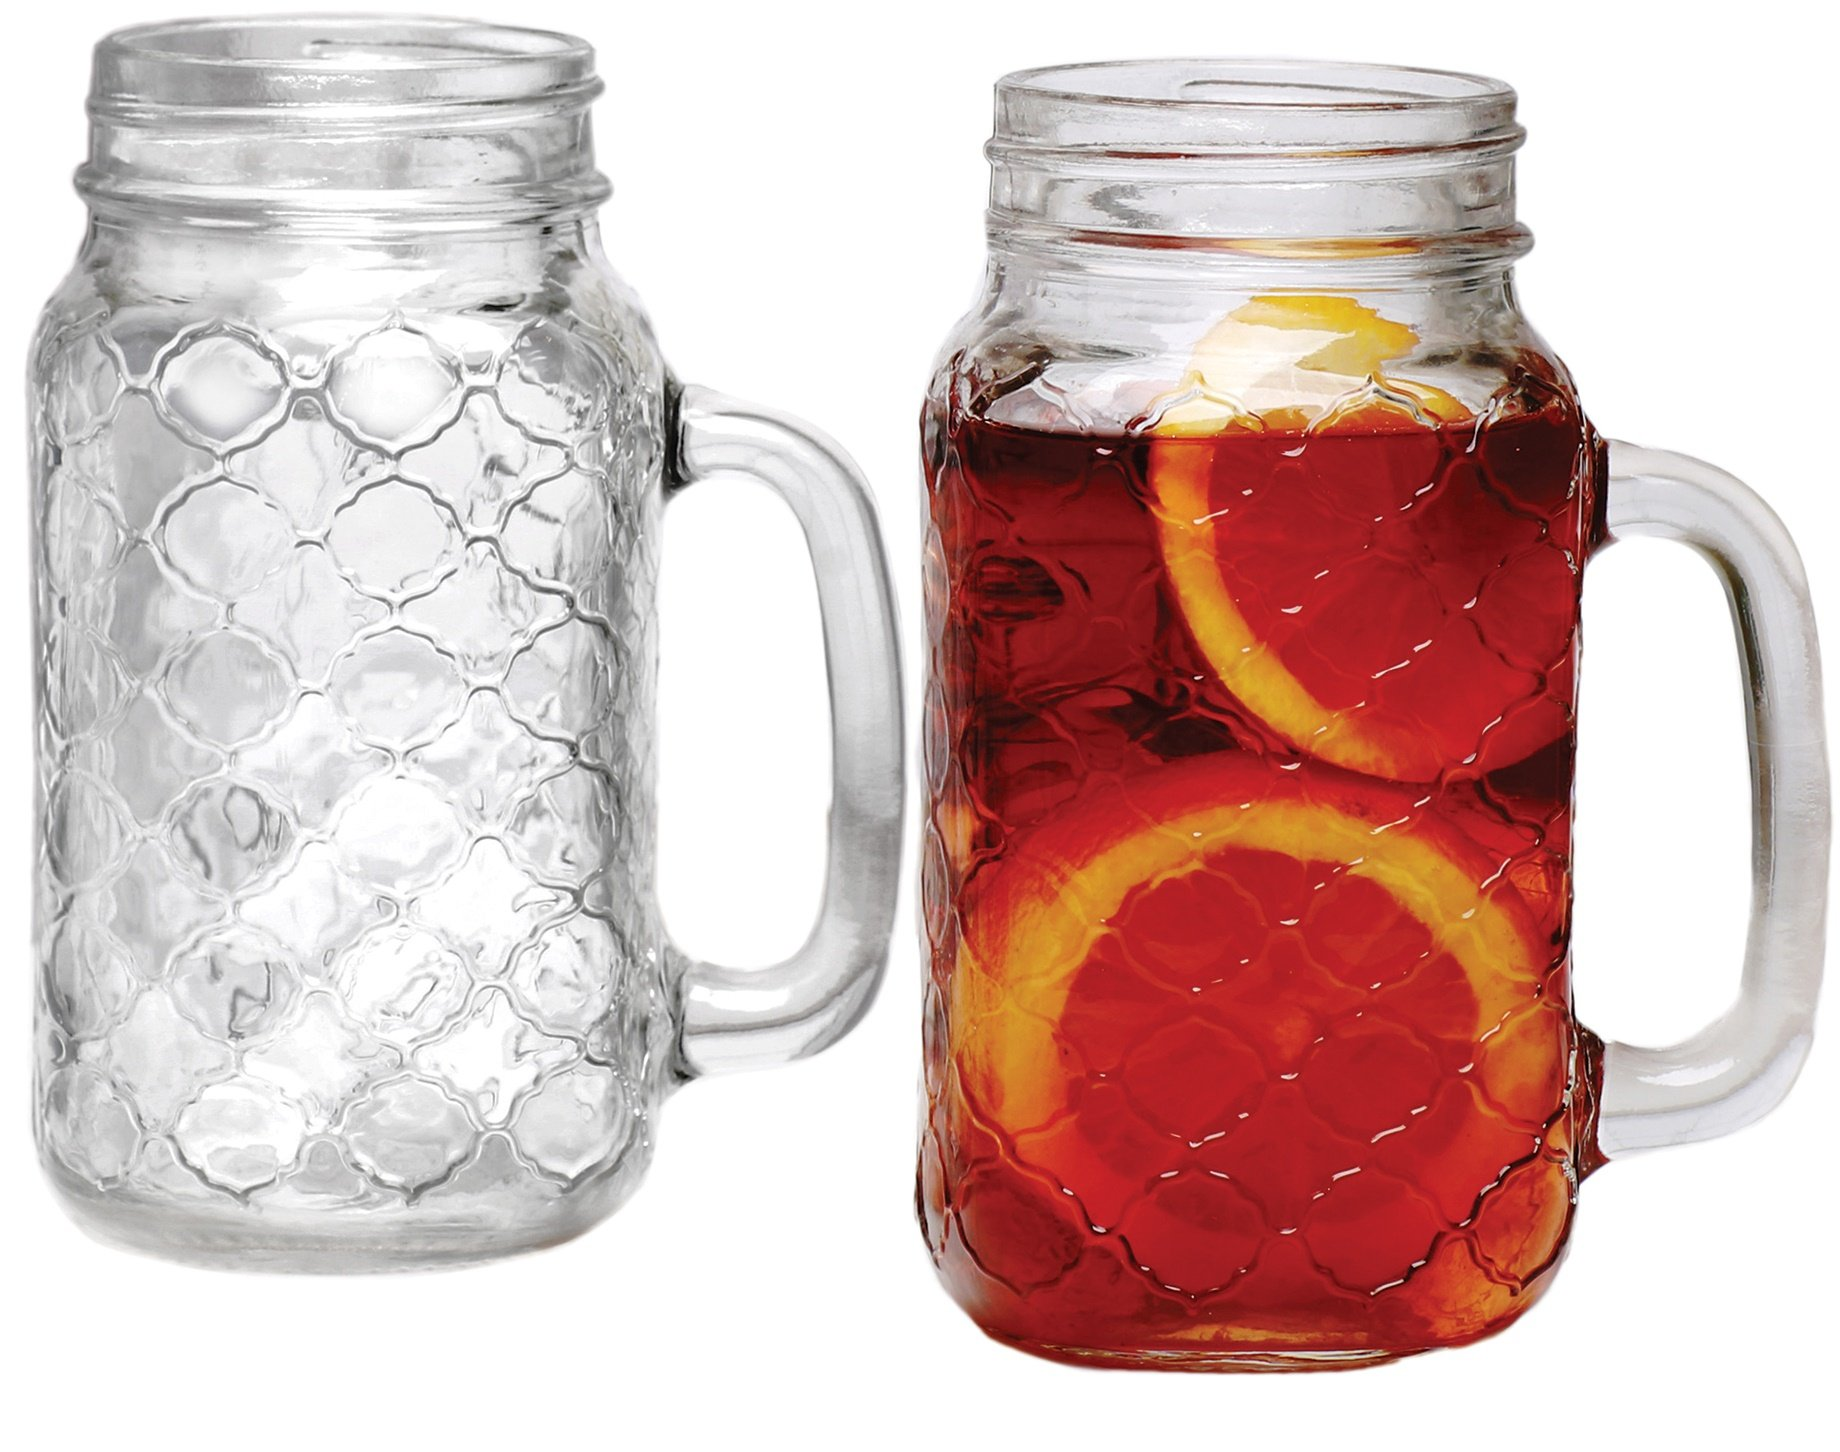 Circleware 68122 Garden Gate Yorkshire Mason Jar Mugs with Glass Handles, Set of 4 Beverage, Water, Juice, Beer Glassware Drinking Cups, 24 oz by Circleware (Image #1)